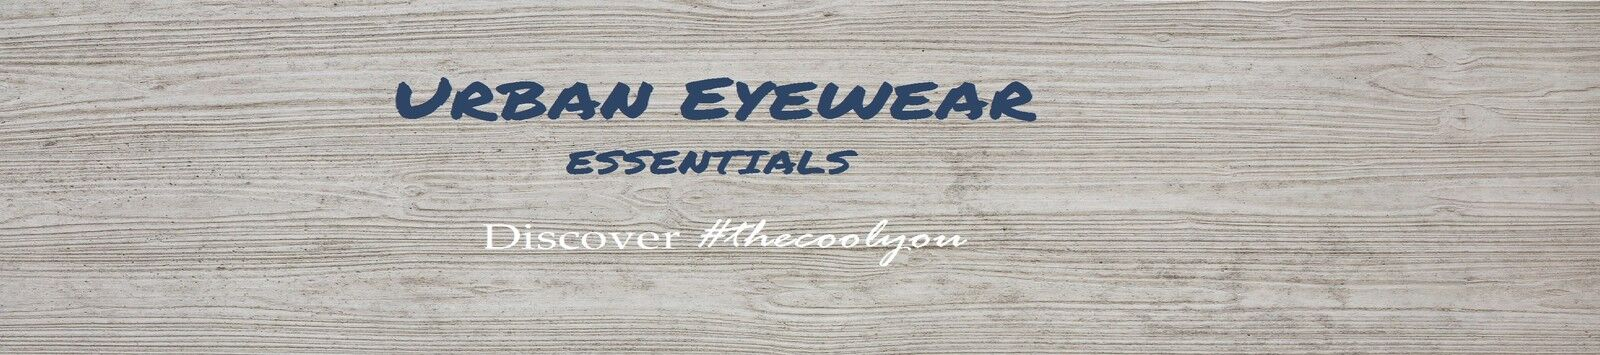 URBAN EYEWEAR ESSENTIALS